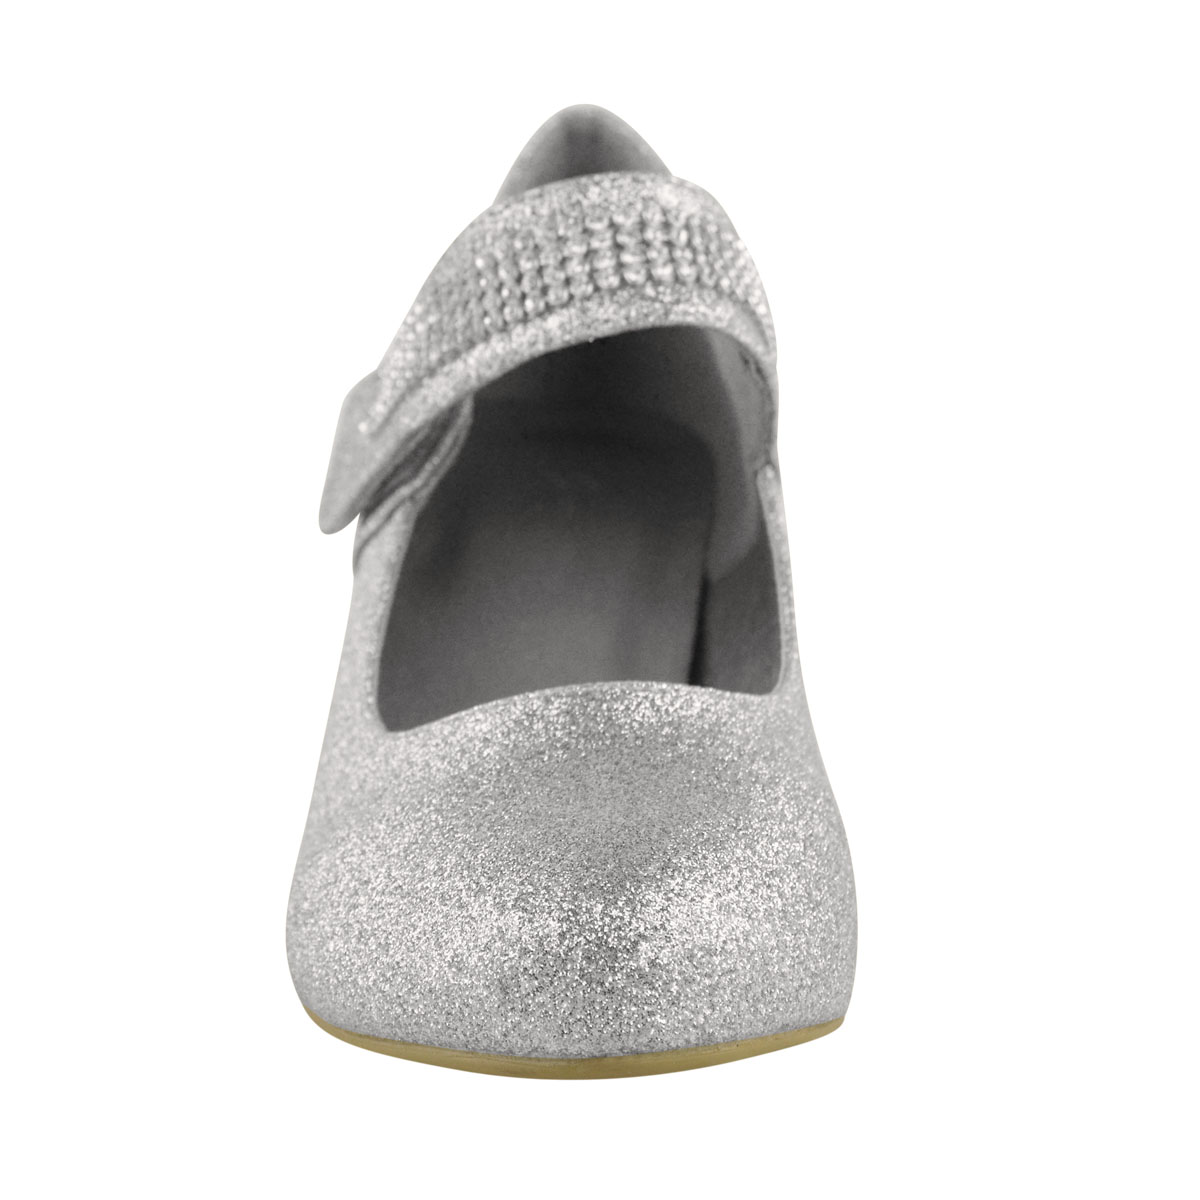 Details about Girls Kids Ladies Low Mid Heel Party Wedding Mary Jane Style Sandals Shoes Size